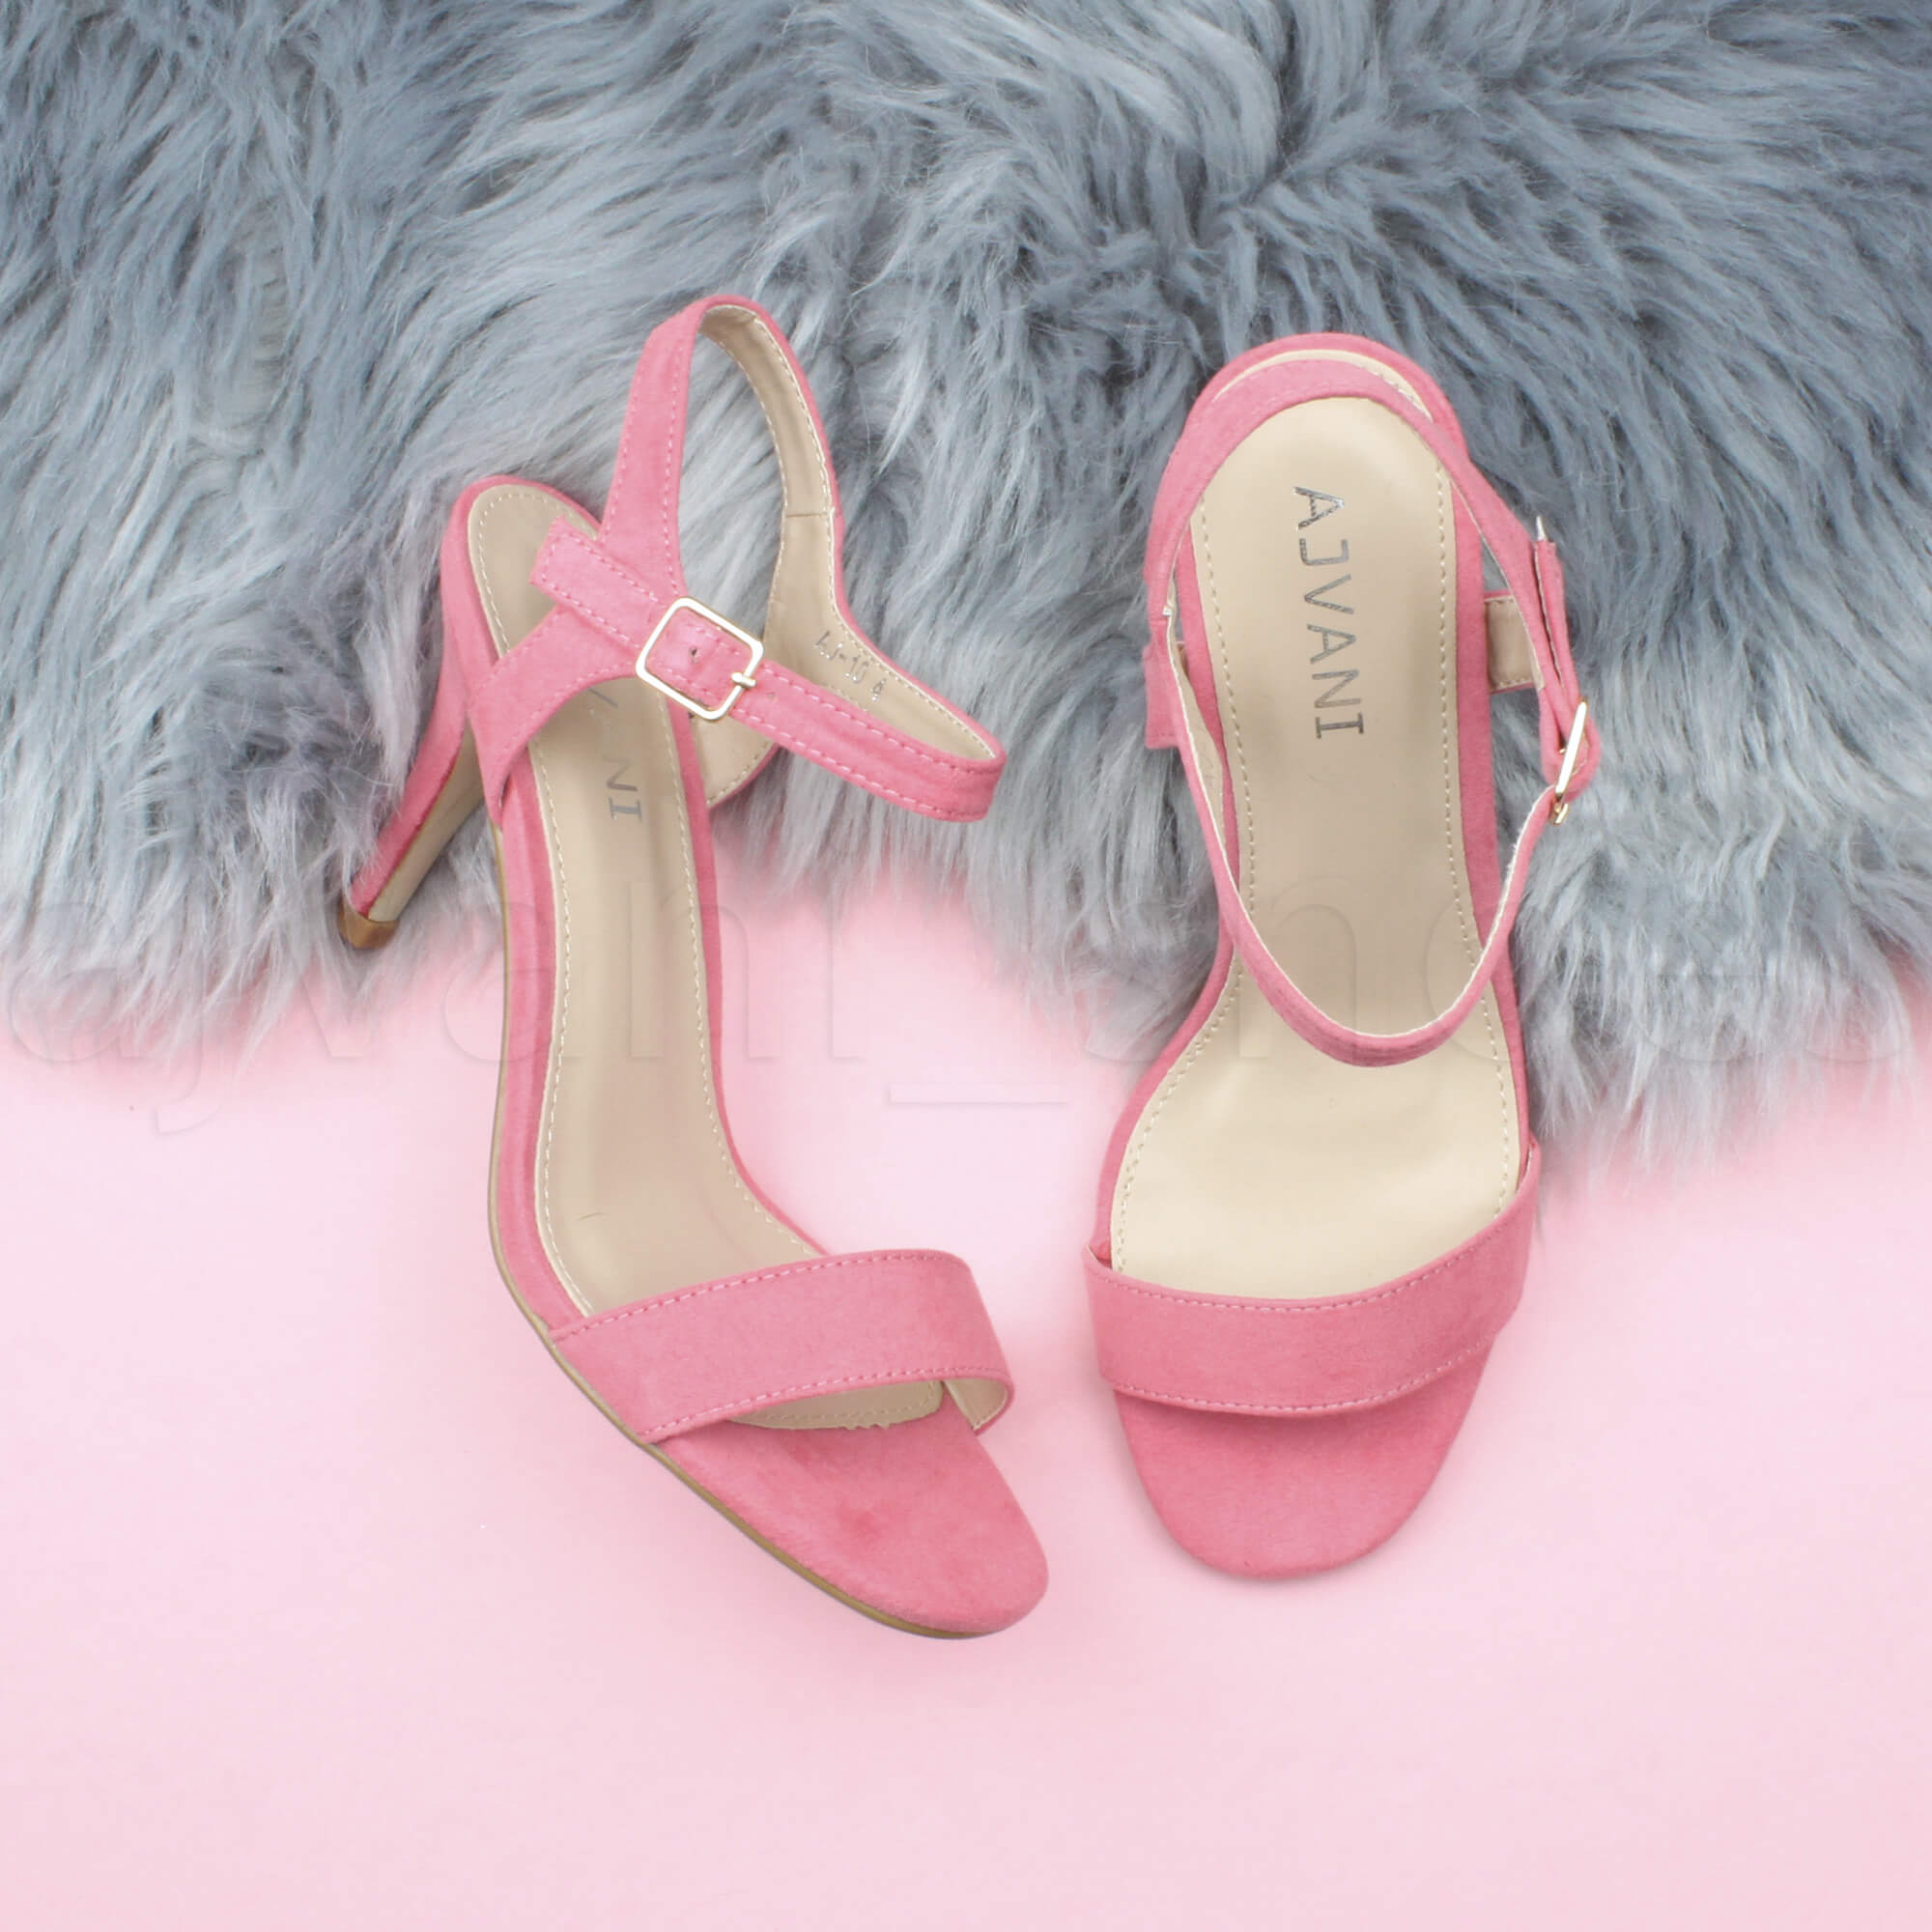 WOMENS-LADIES-HIGH-HEEL-BUCKLE-STRAPPY-BASIC-BARELY-THERE-SANDALS-SHOES-SIZE thumbnail 26